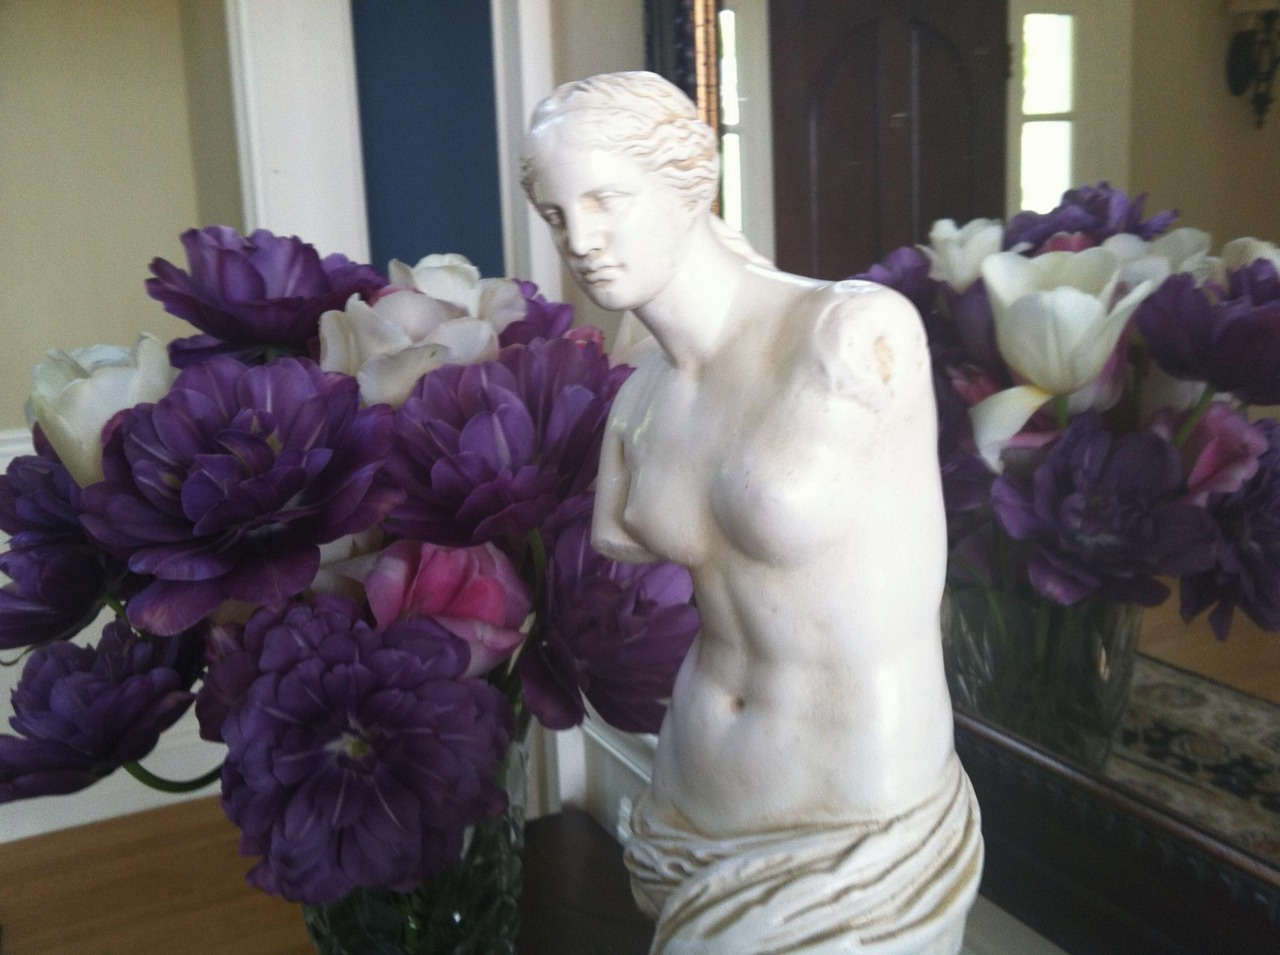 The goddess Demeter is renewing nature for the spring. The Chocolate Goddess loves her purple multi-layered tulips!